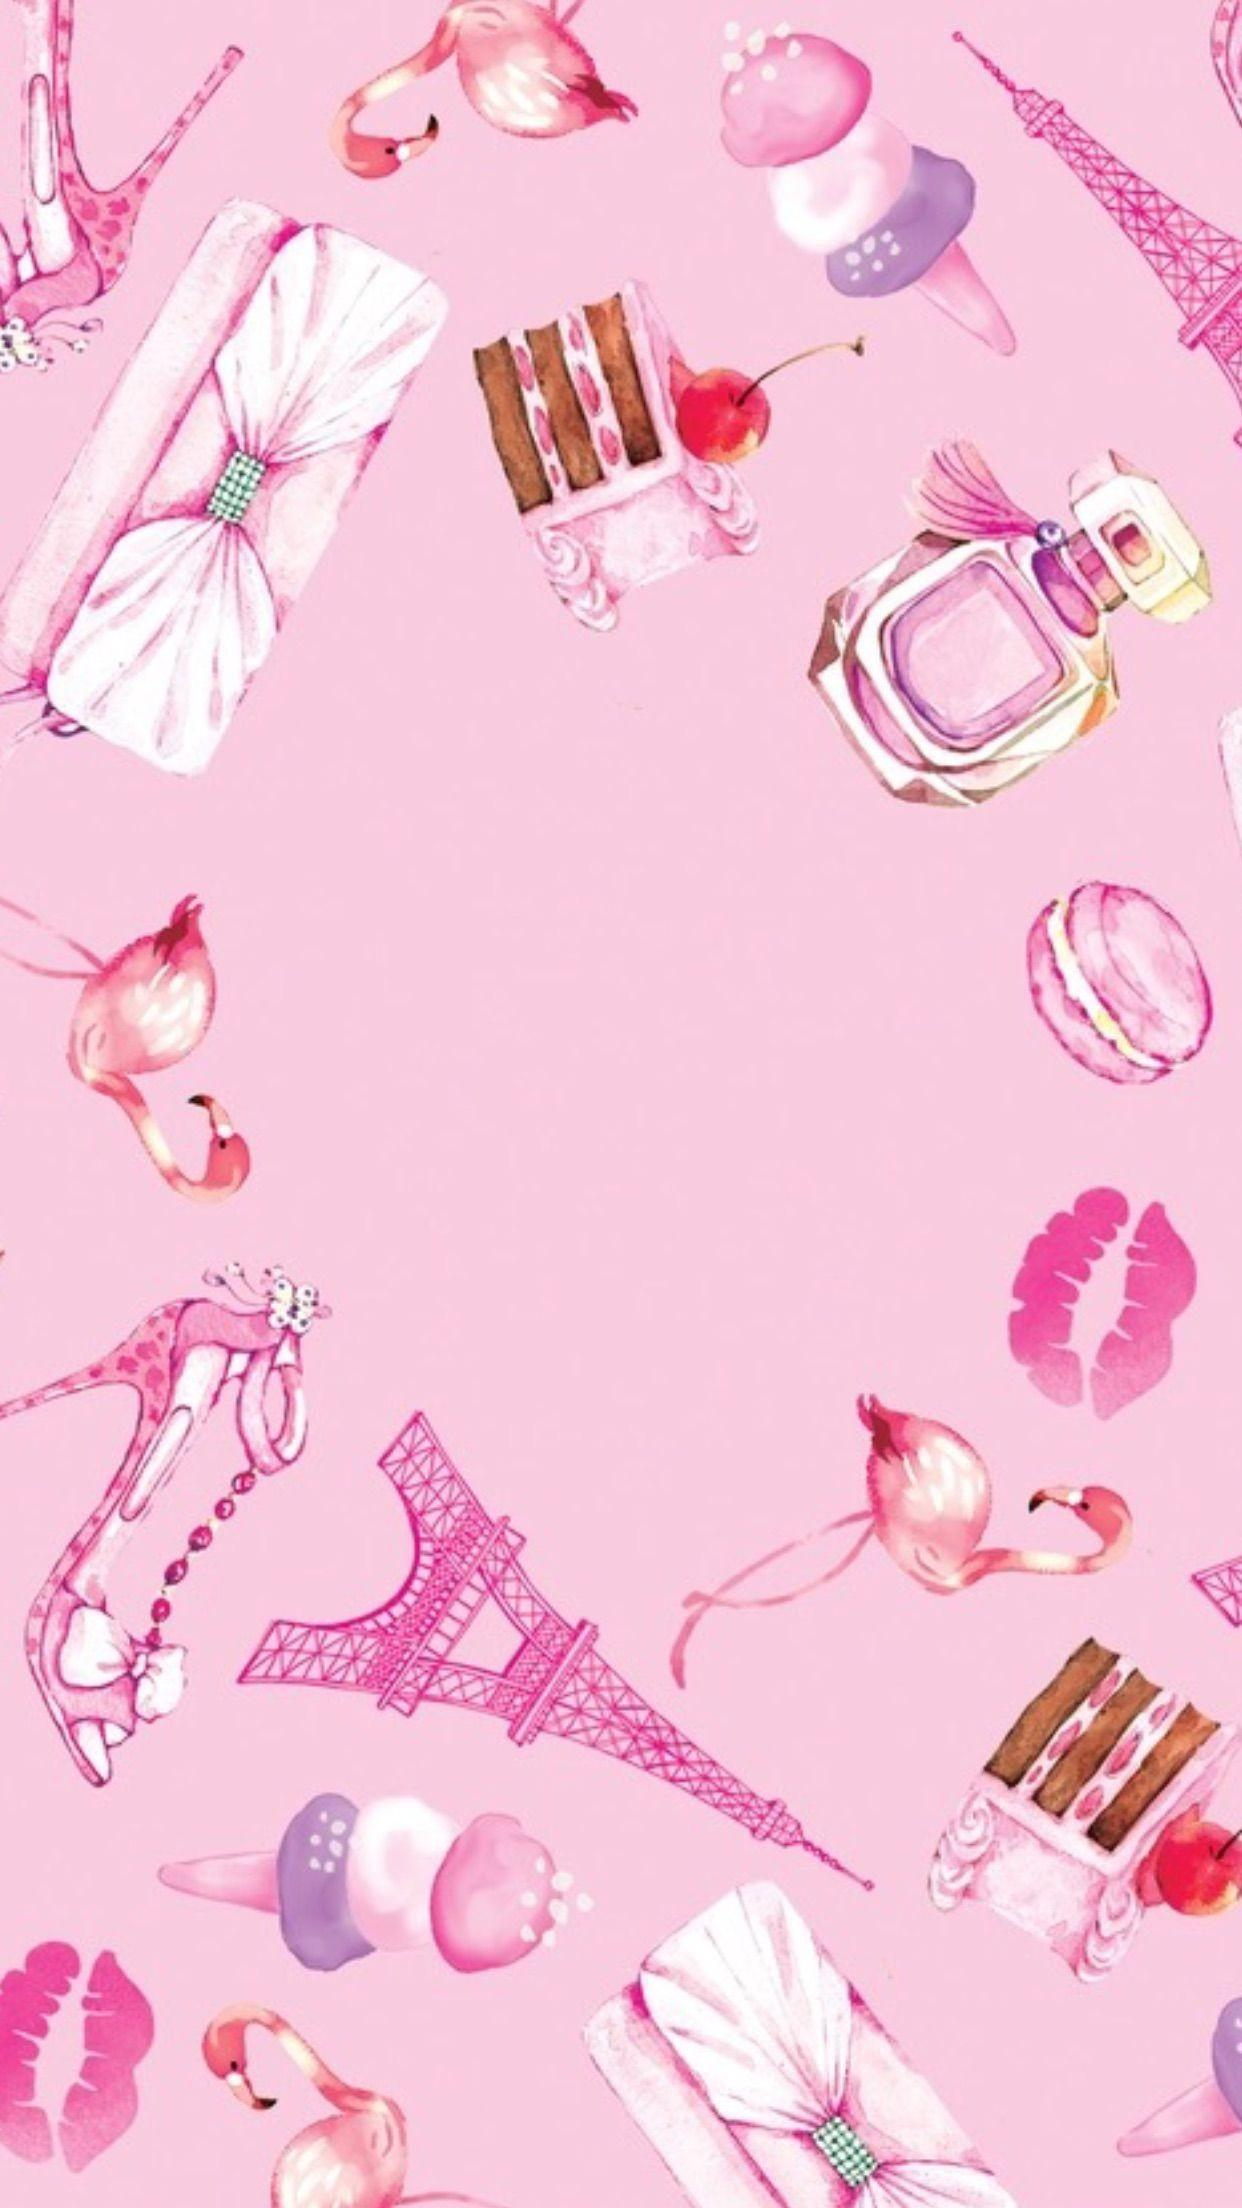 Girly iPhone Wallpaper (82+ images)  |Girly Iphone Wallpapers